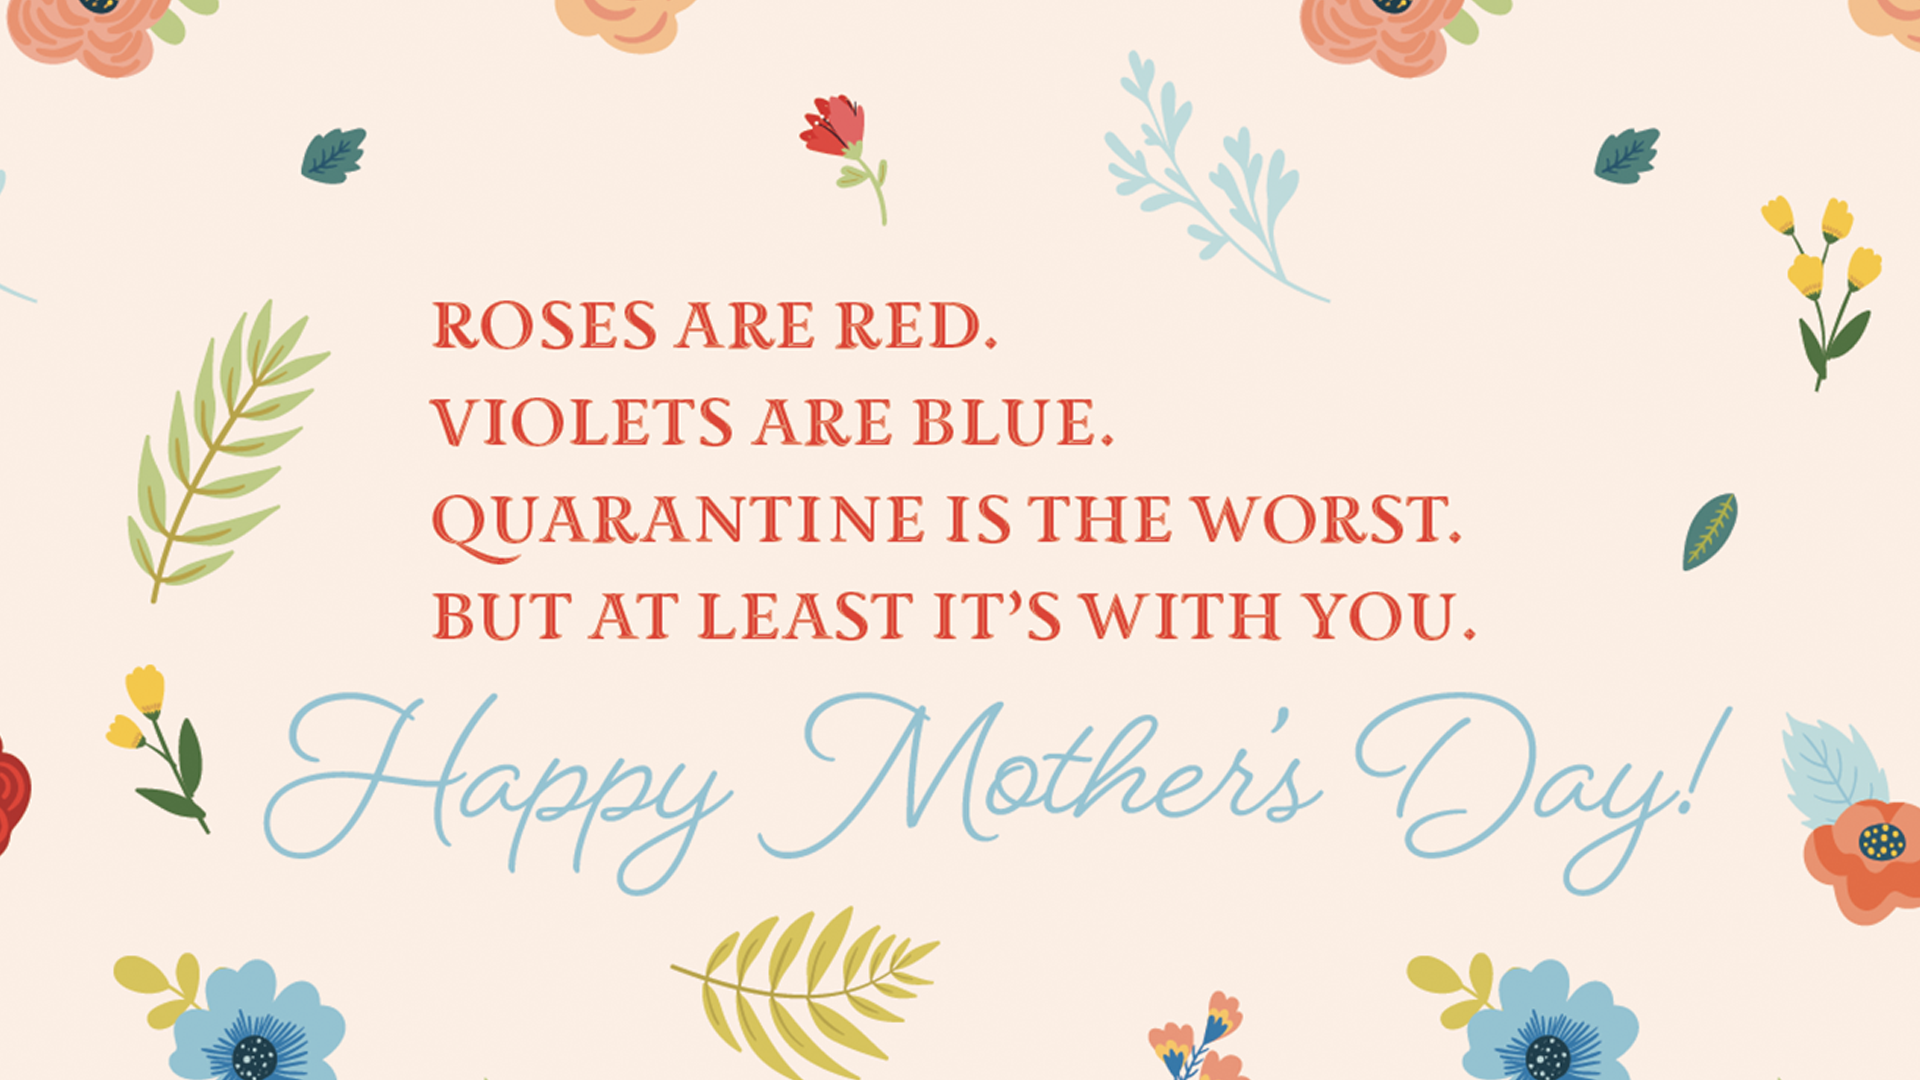 2020 Mother's Day Cards Featured Image